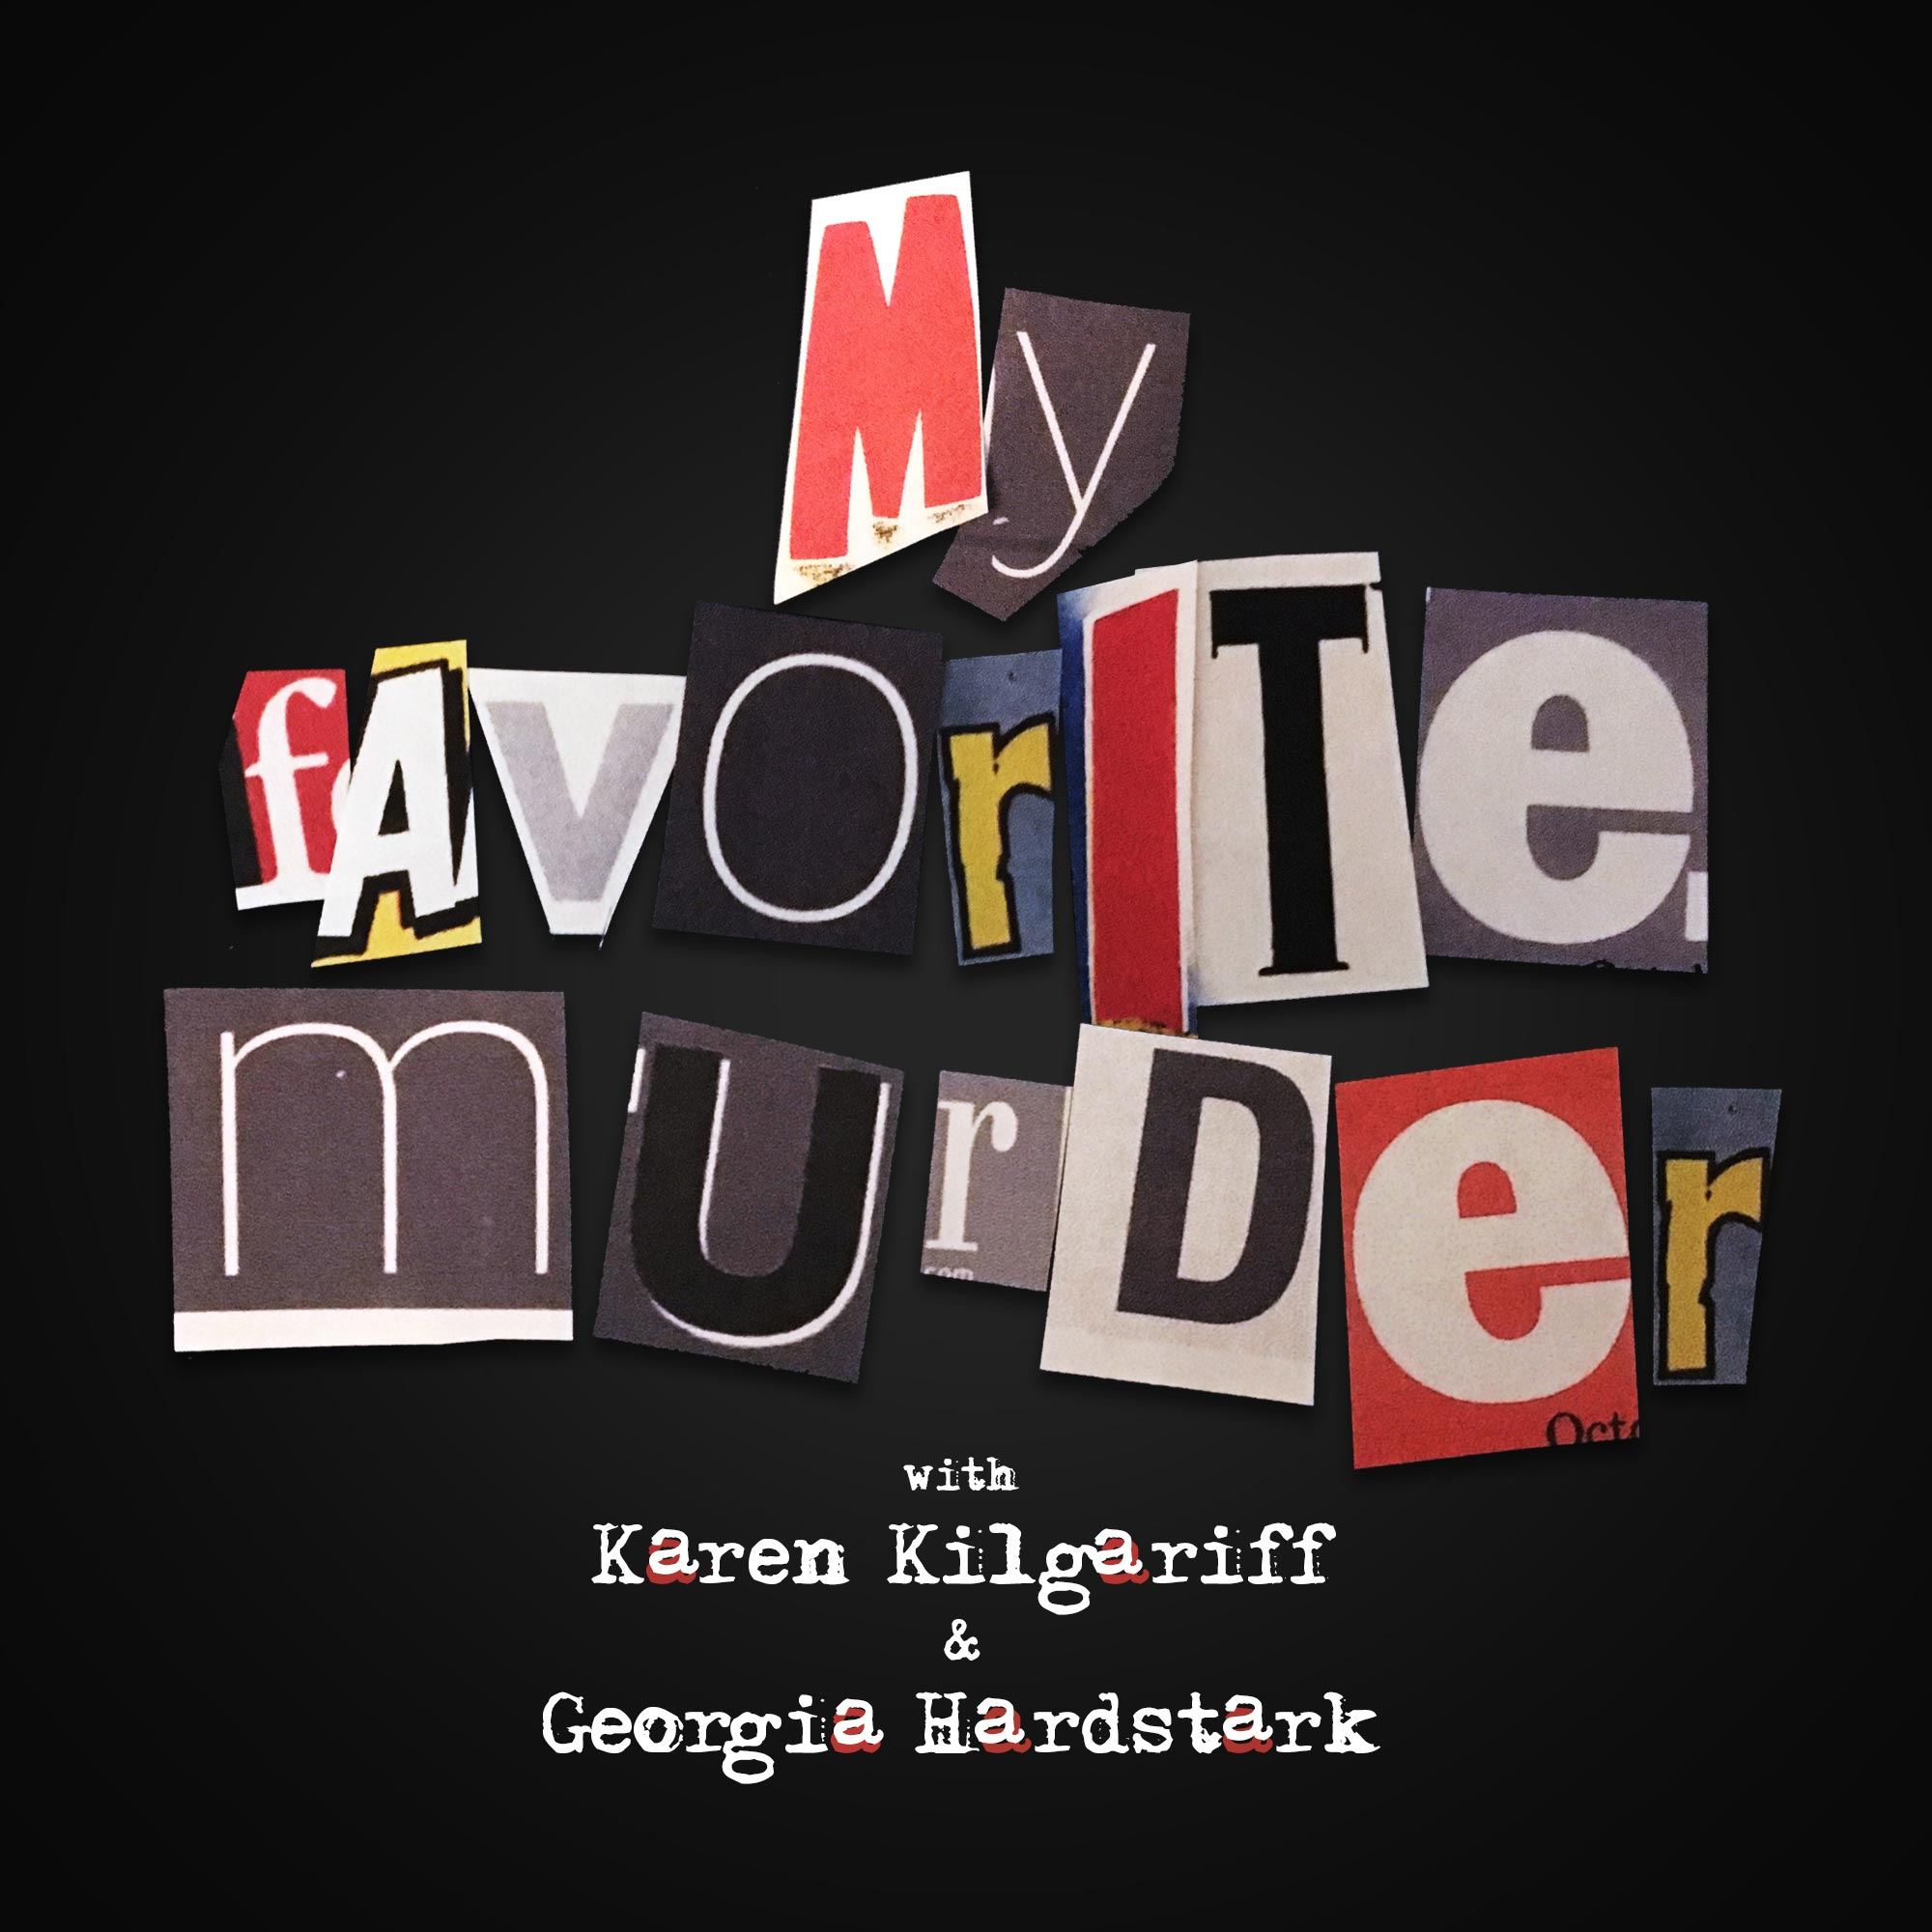 9. My Favorite Murder